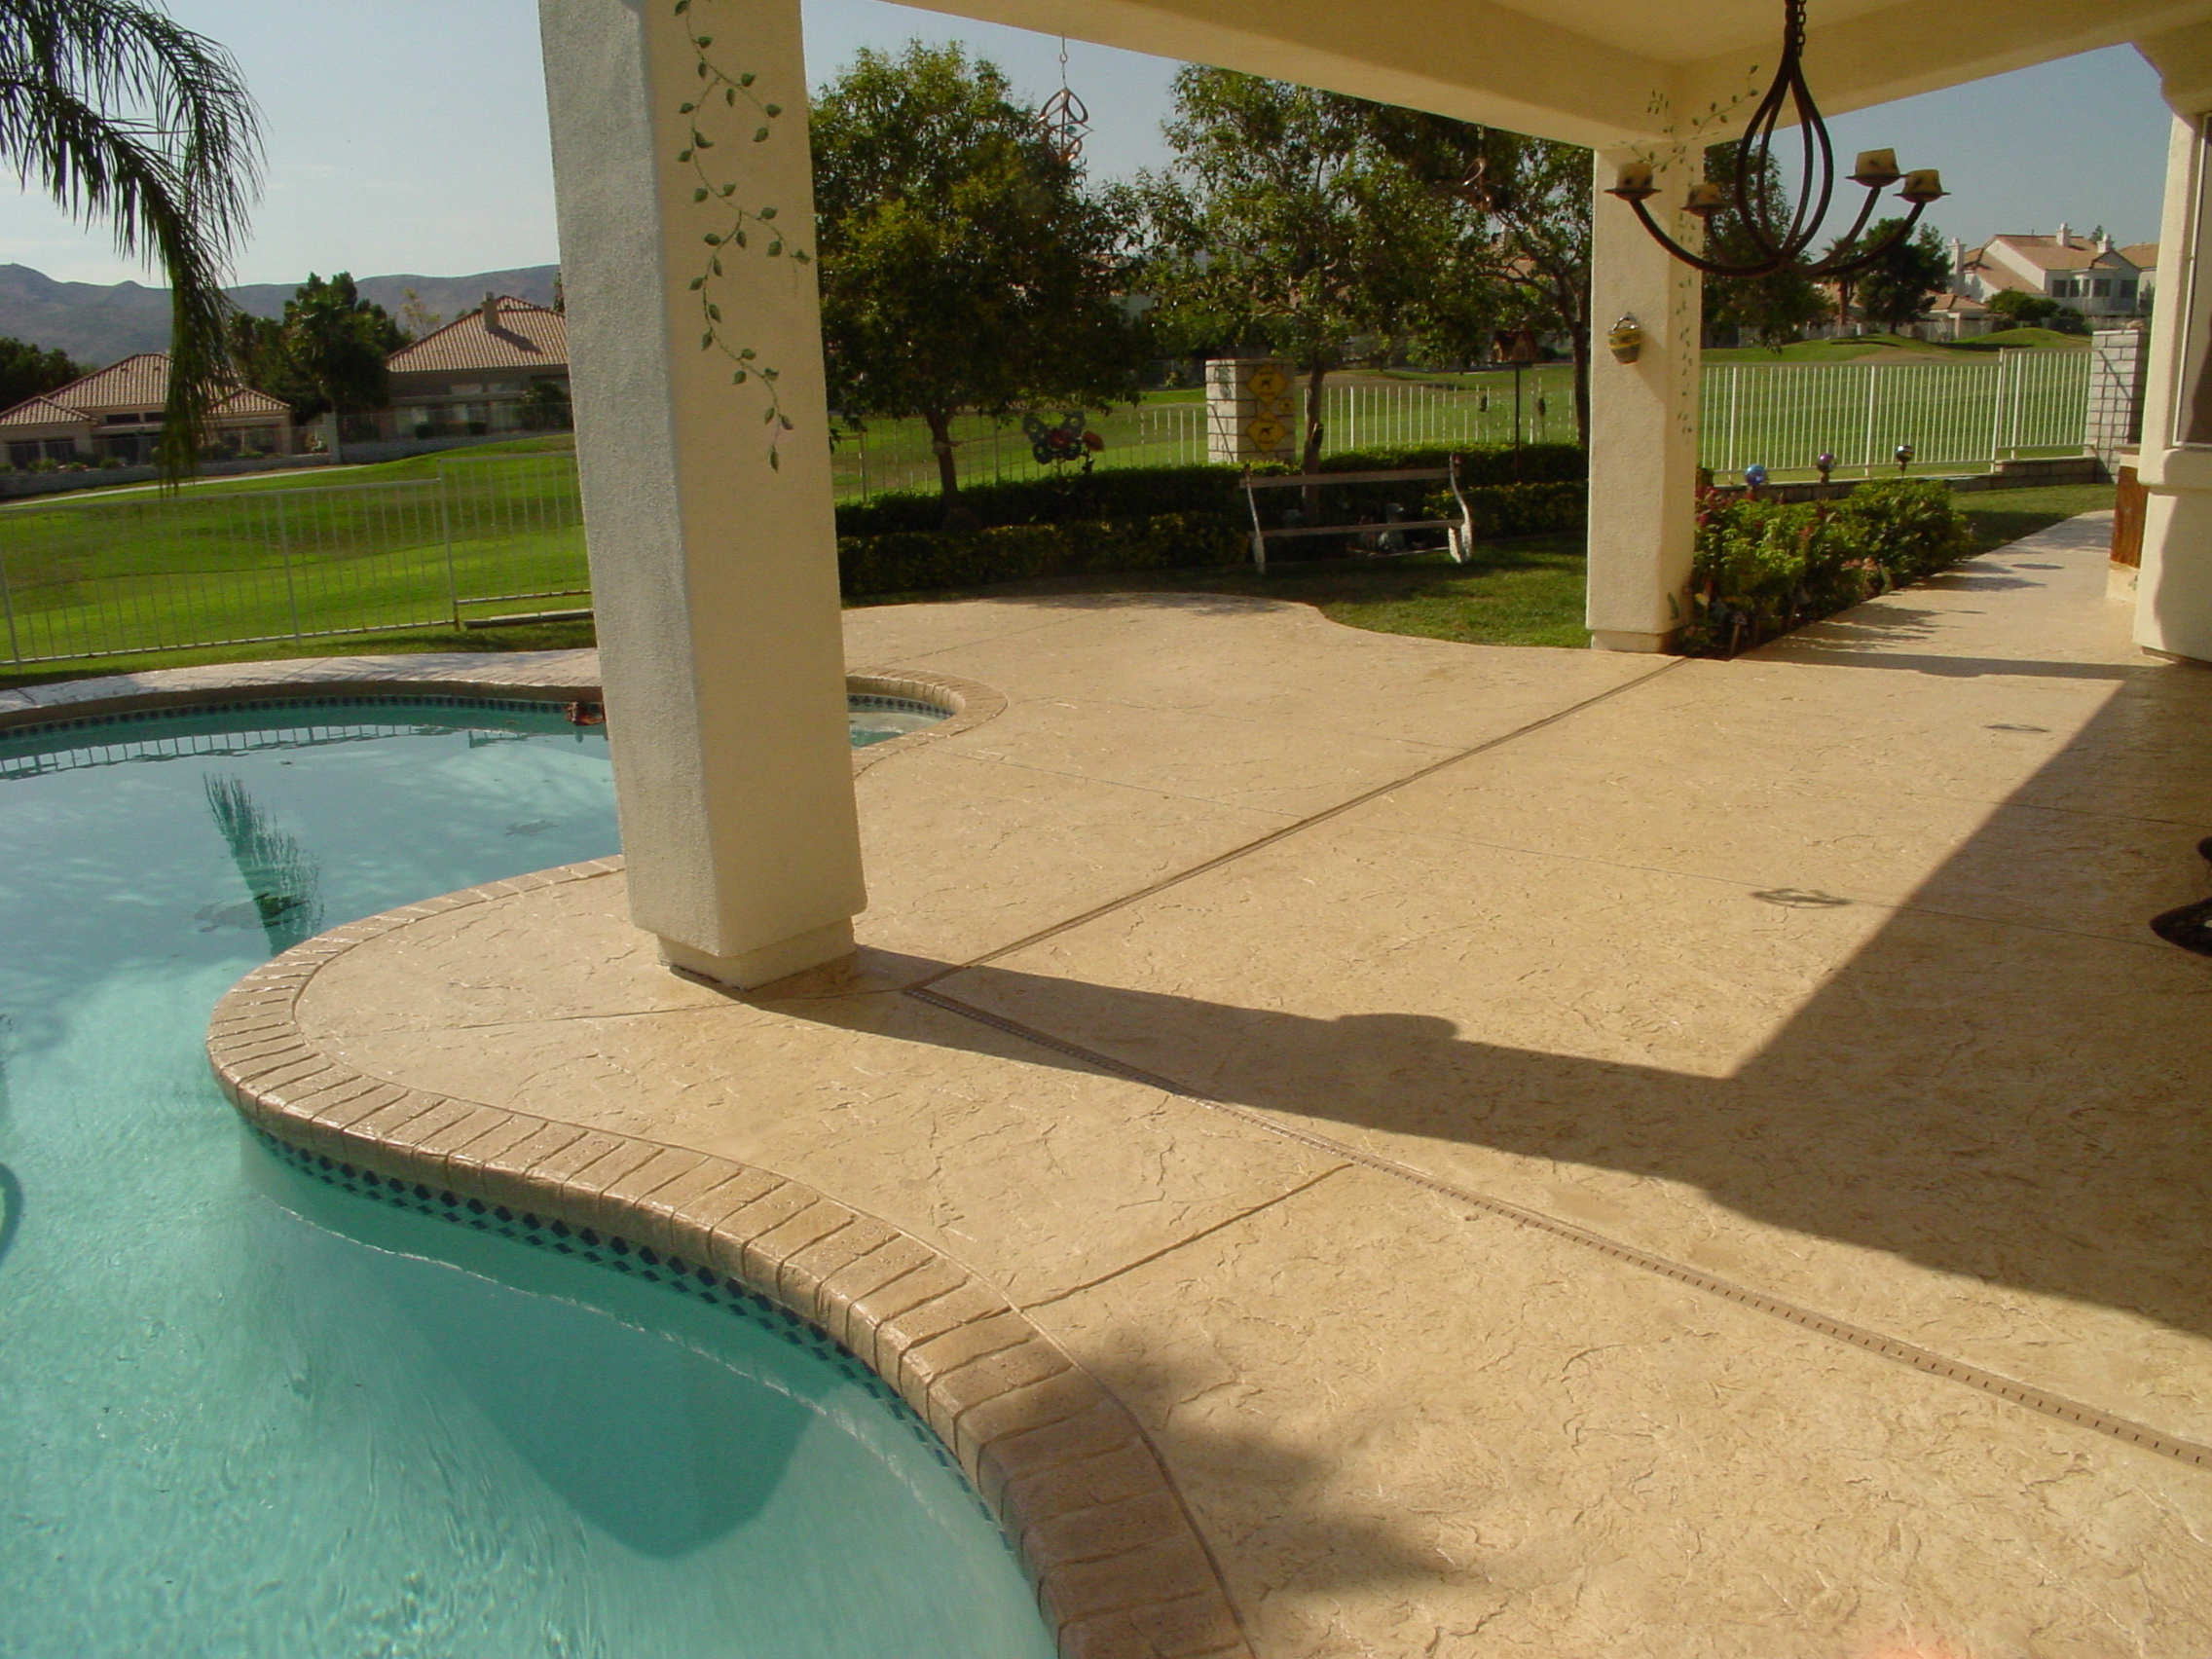 Americrete pool deck with cements and stains